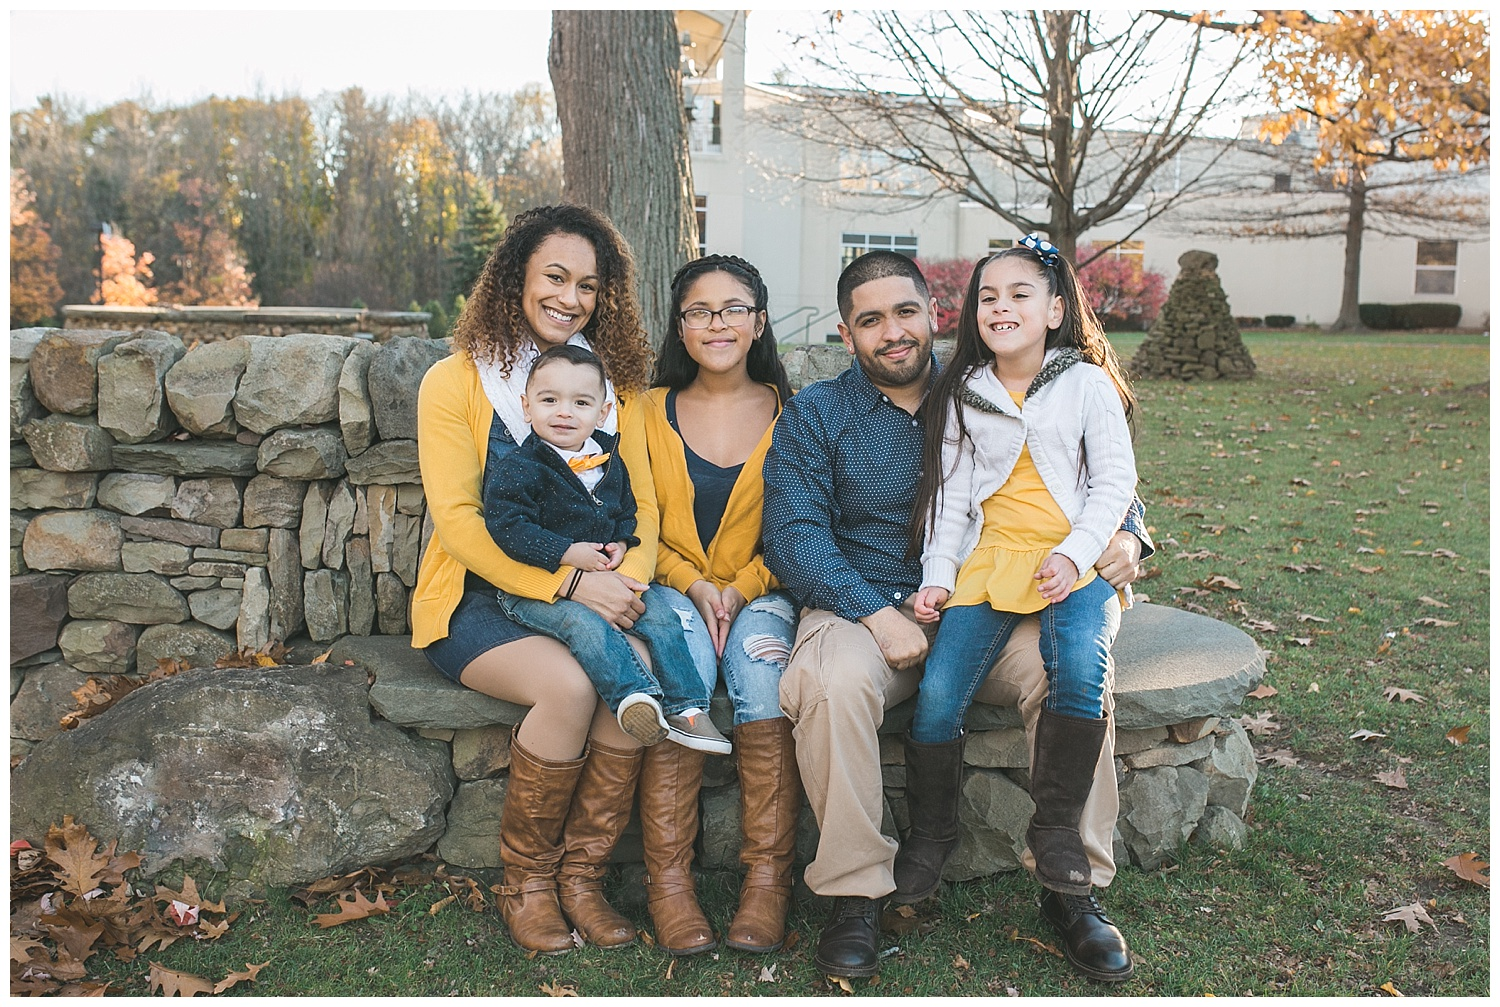 Harley School Family session - Rochester NY - Whimsy roots 41.jpg